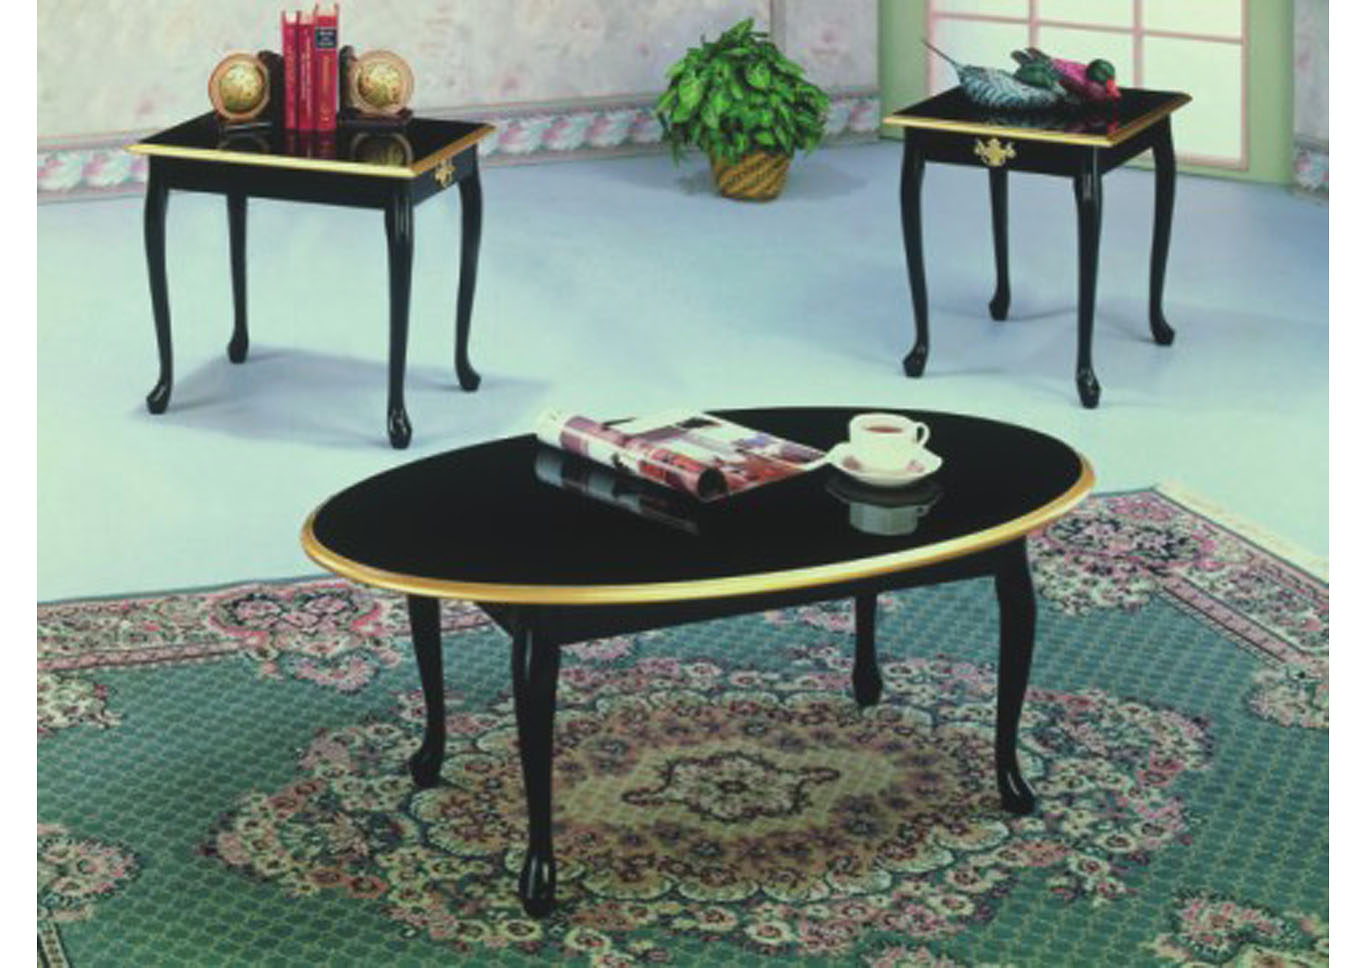 3Pc Black Queen Anne Coffee u0026 End Table Set Global Trading : queen anne coffee table set - pezcame.com